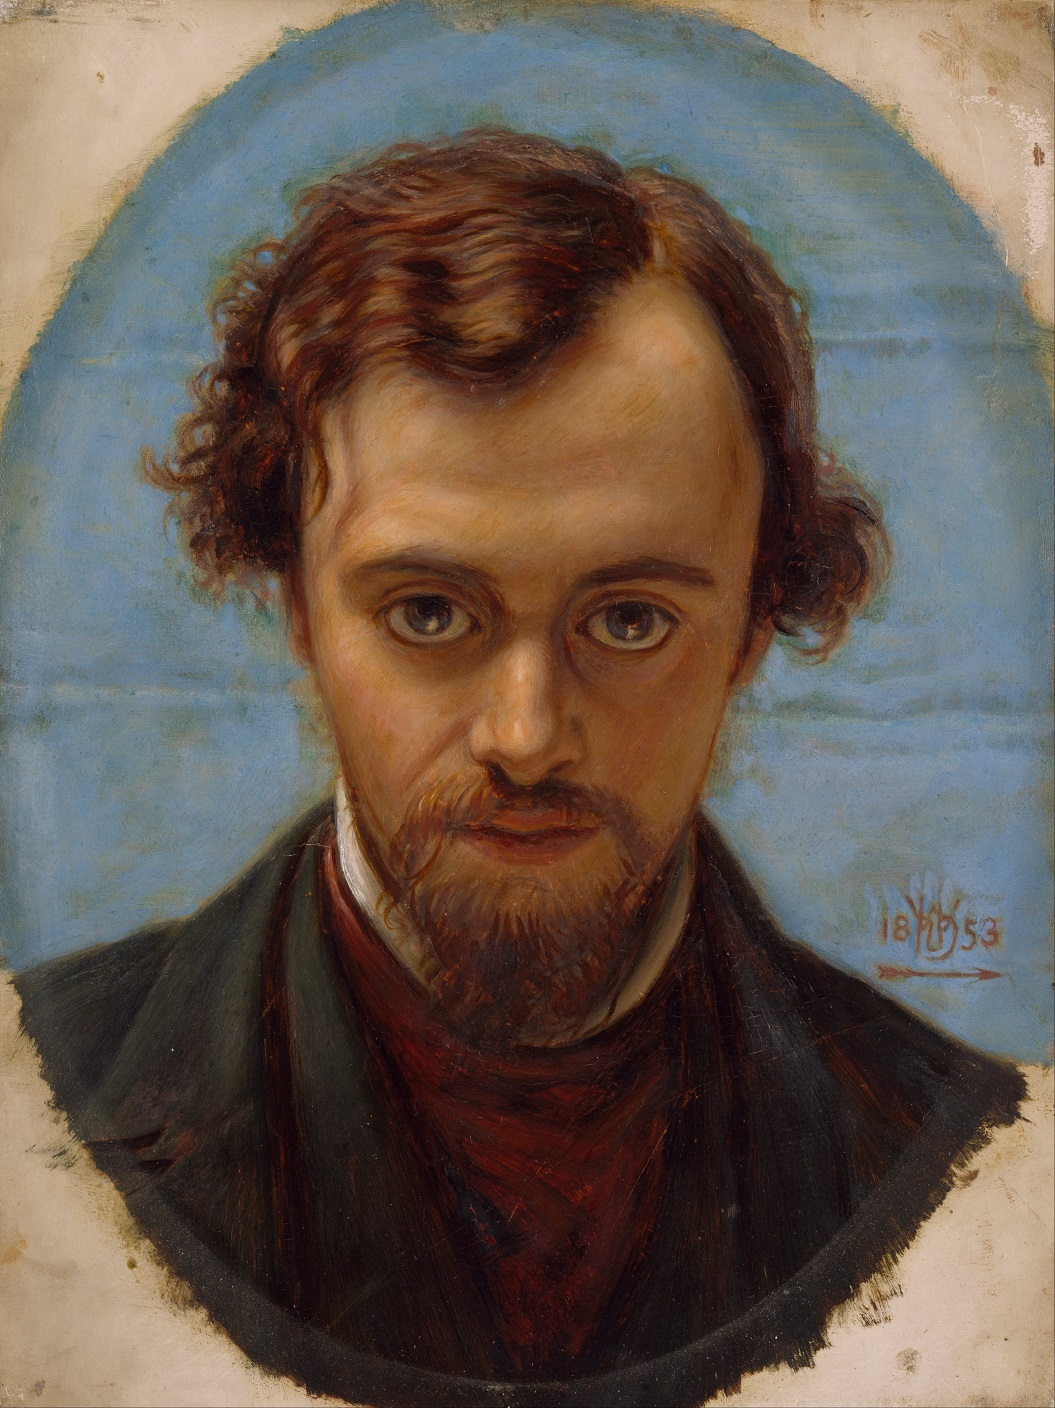 A portrait of Rossetti at age 22, by his friend William Holman Hunt